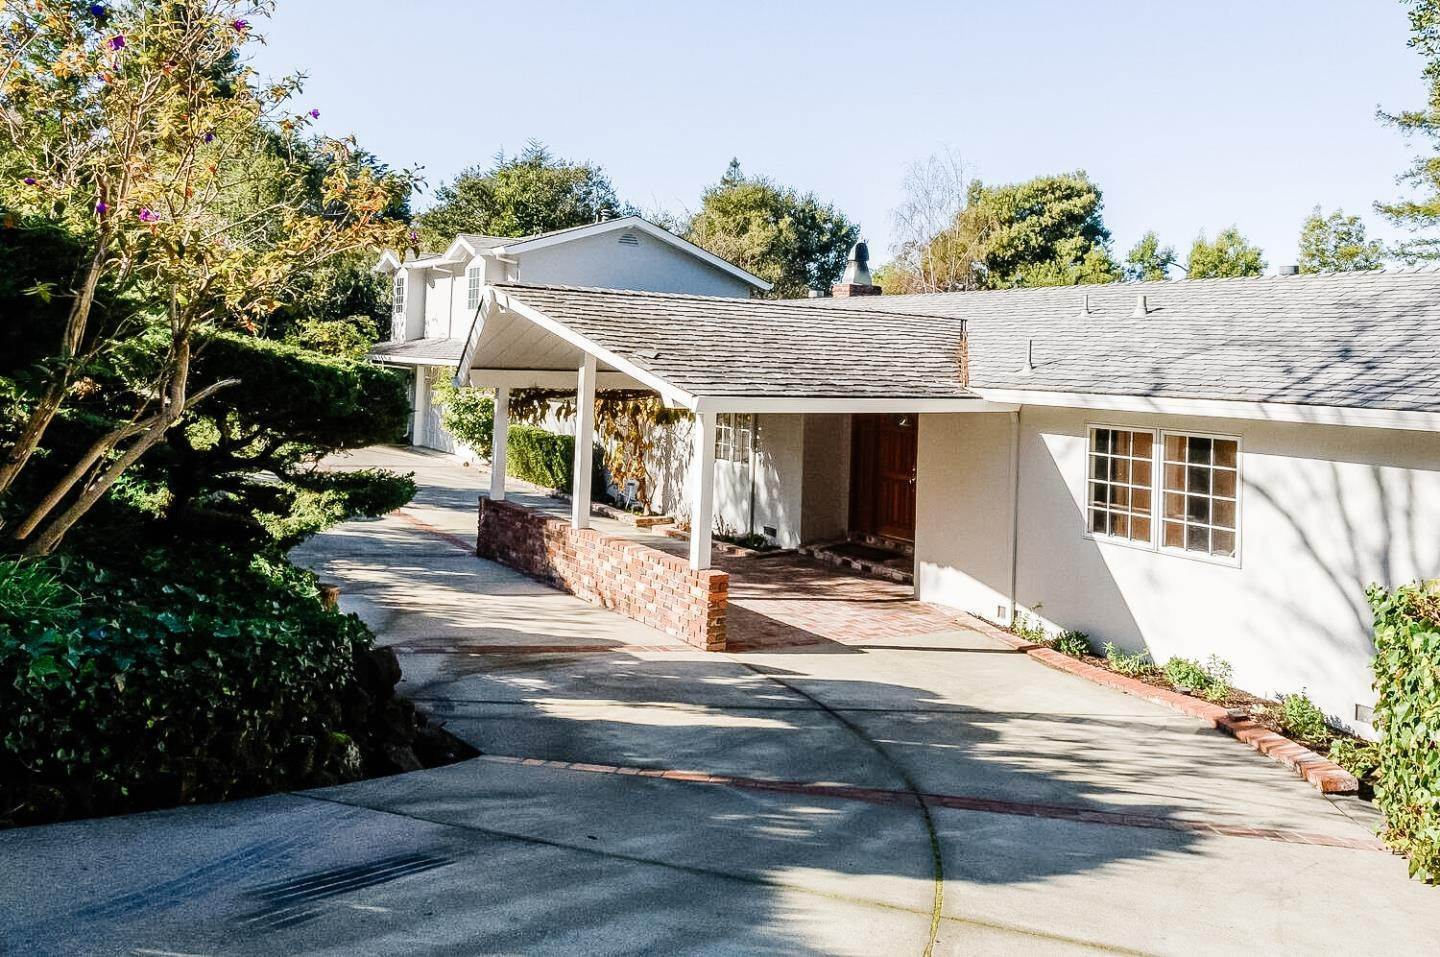 Residential for Sale at 2810 Summit Drive Burlingame, California 94010 United States